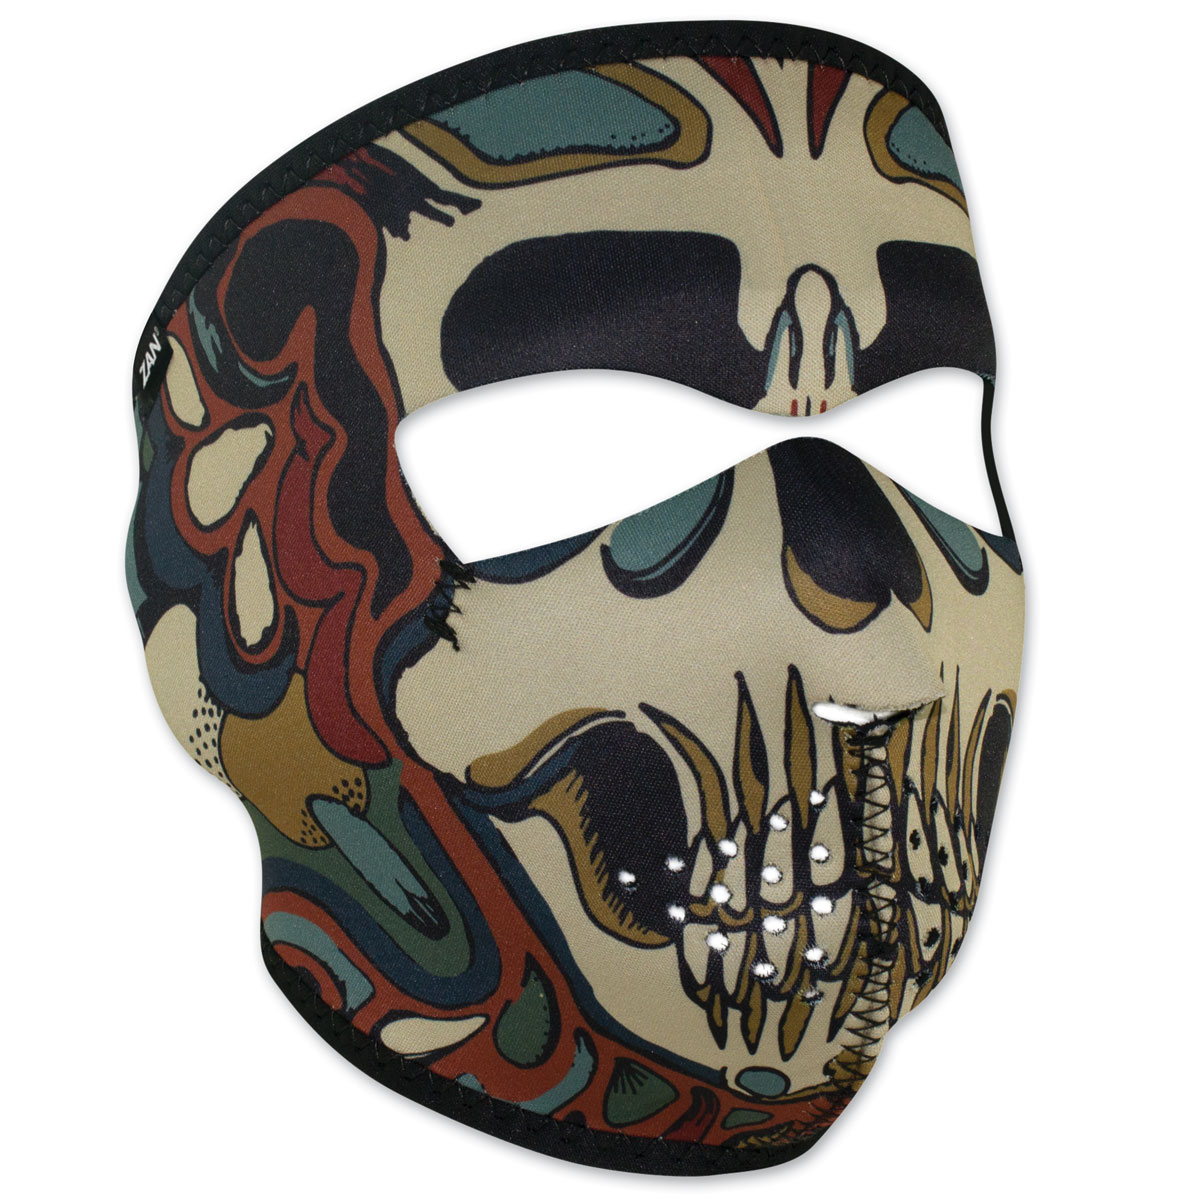 ZAN headgear Neoprene Psychedelic Skull Full Mask